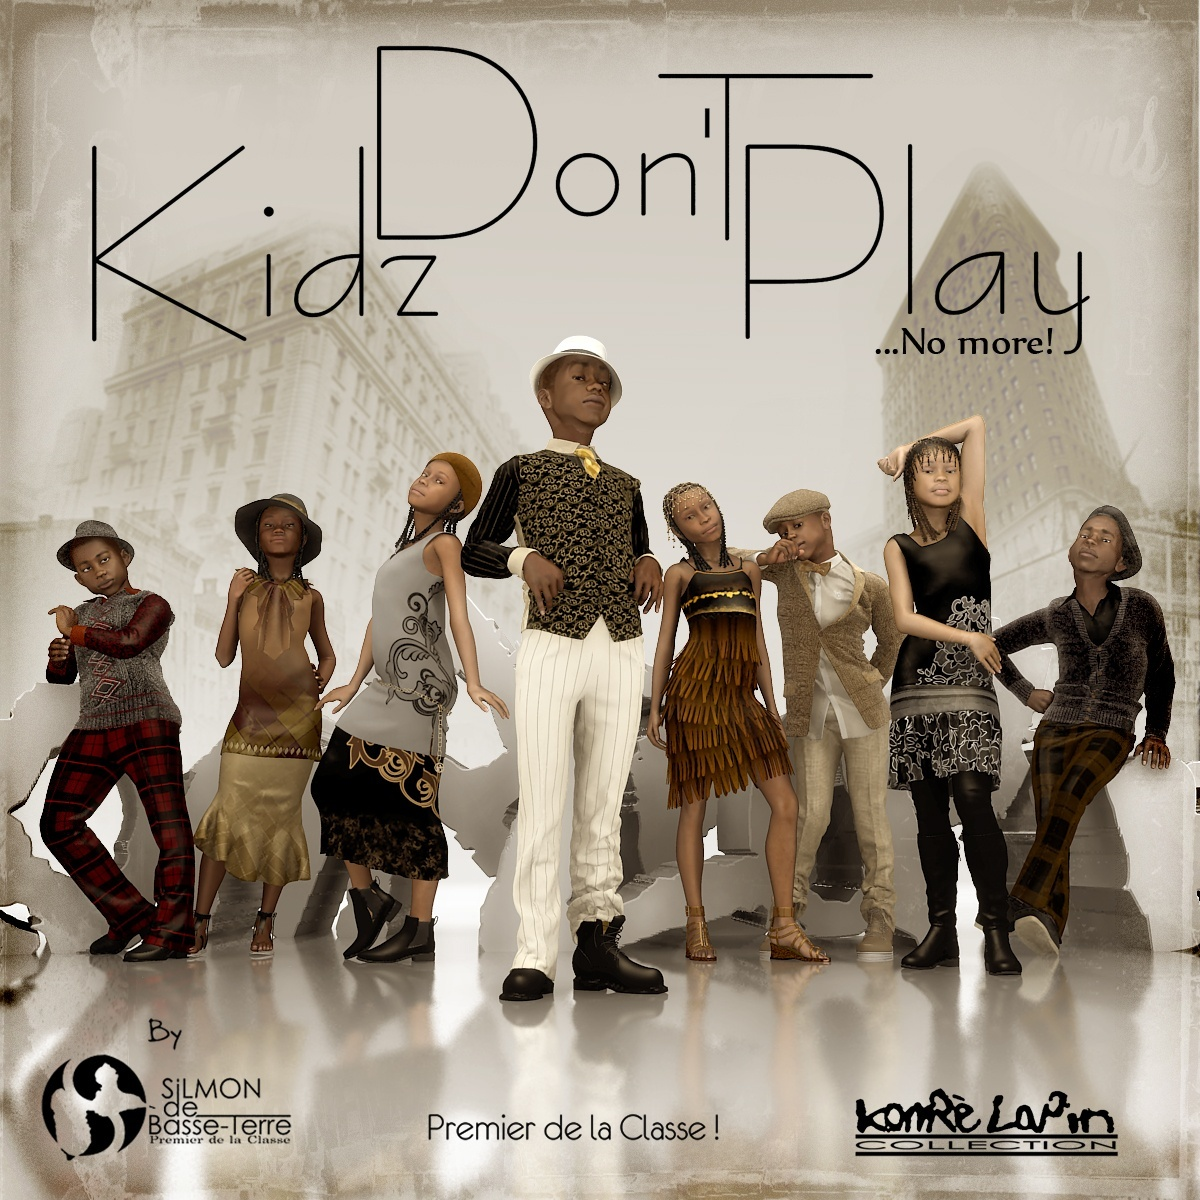 Kidz Dont Play...No more! by samsil